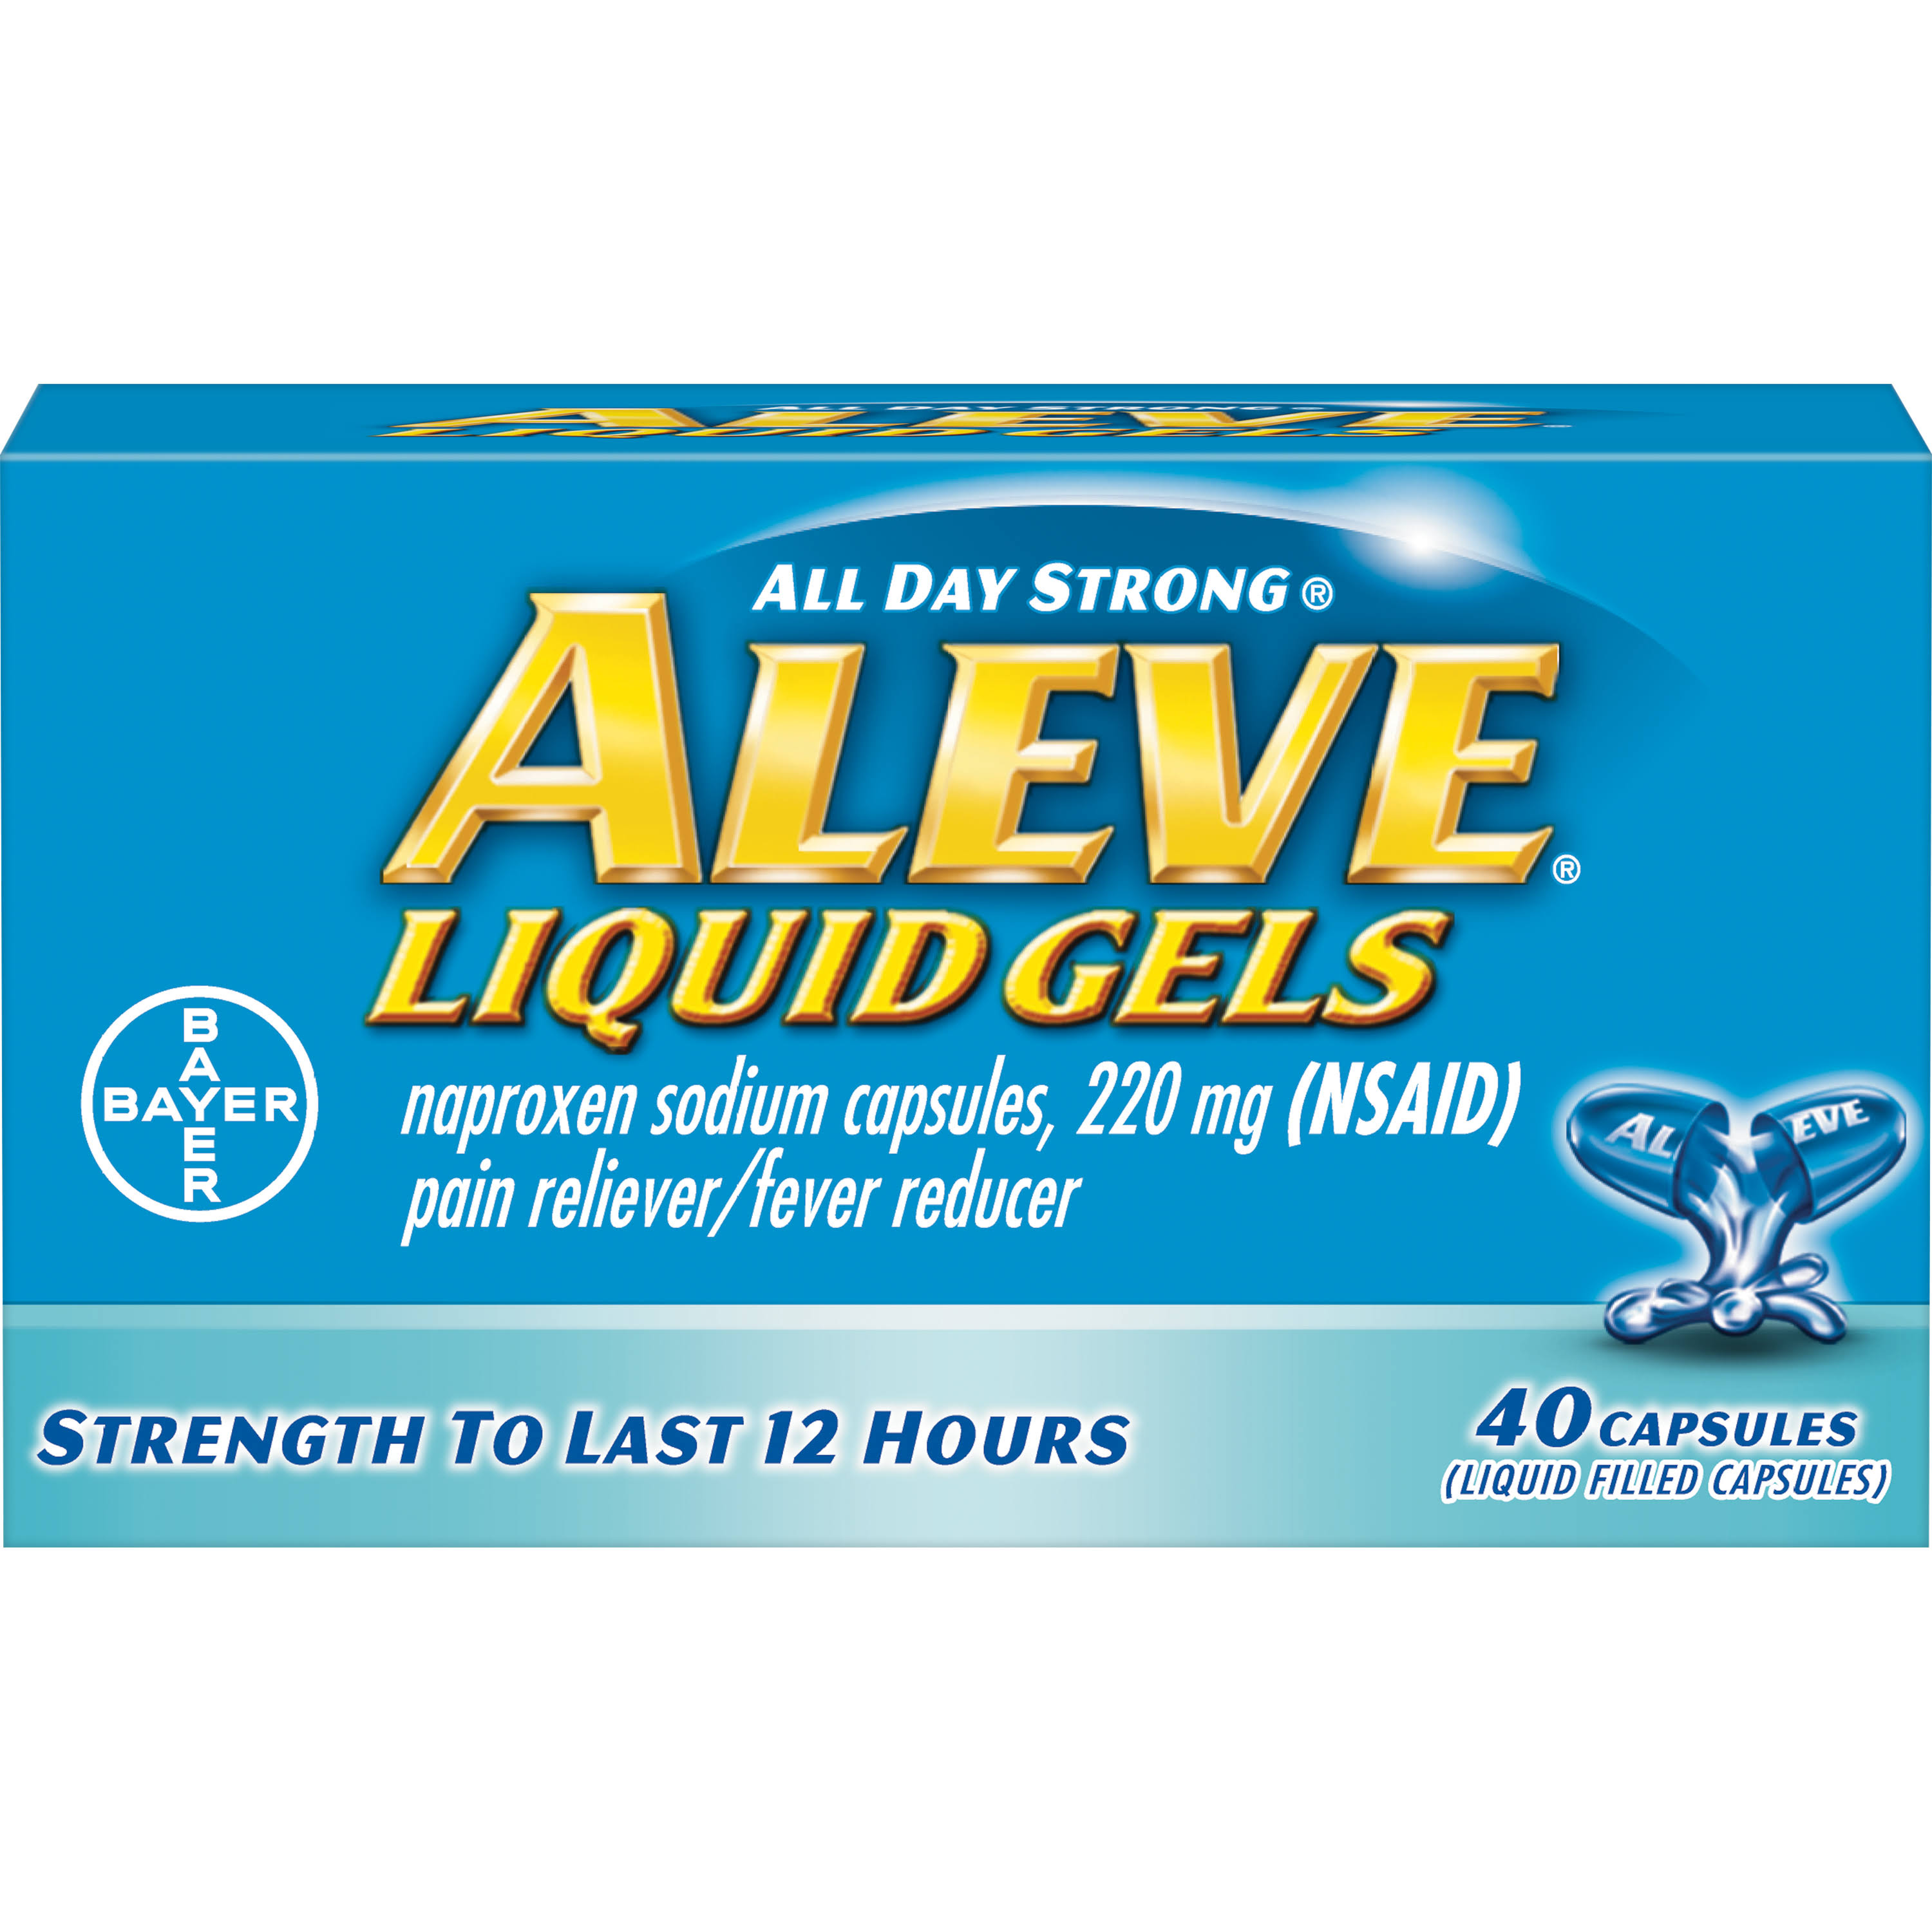 Bayer Aleve Naproxen Sodium Capsules Liquid Gels - 220mg, 40ct